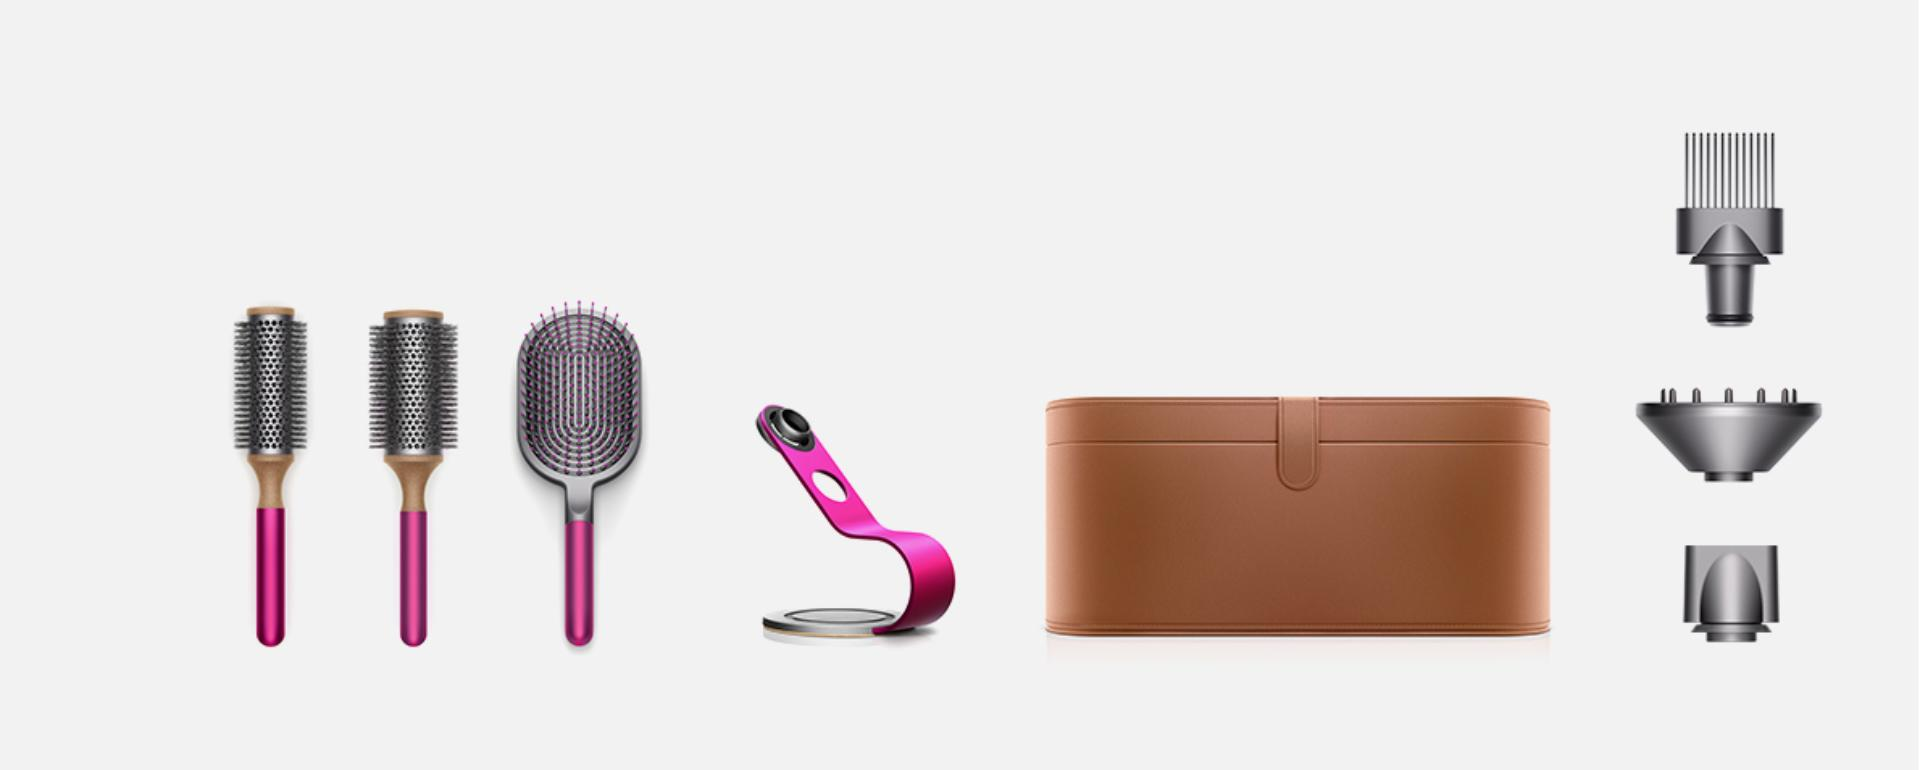 Dyson Supersonic™ hair dryer accessories